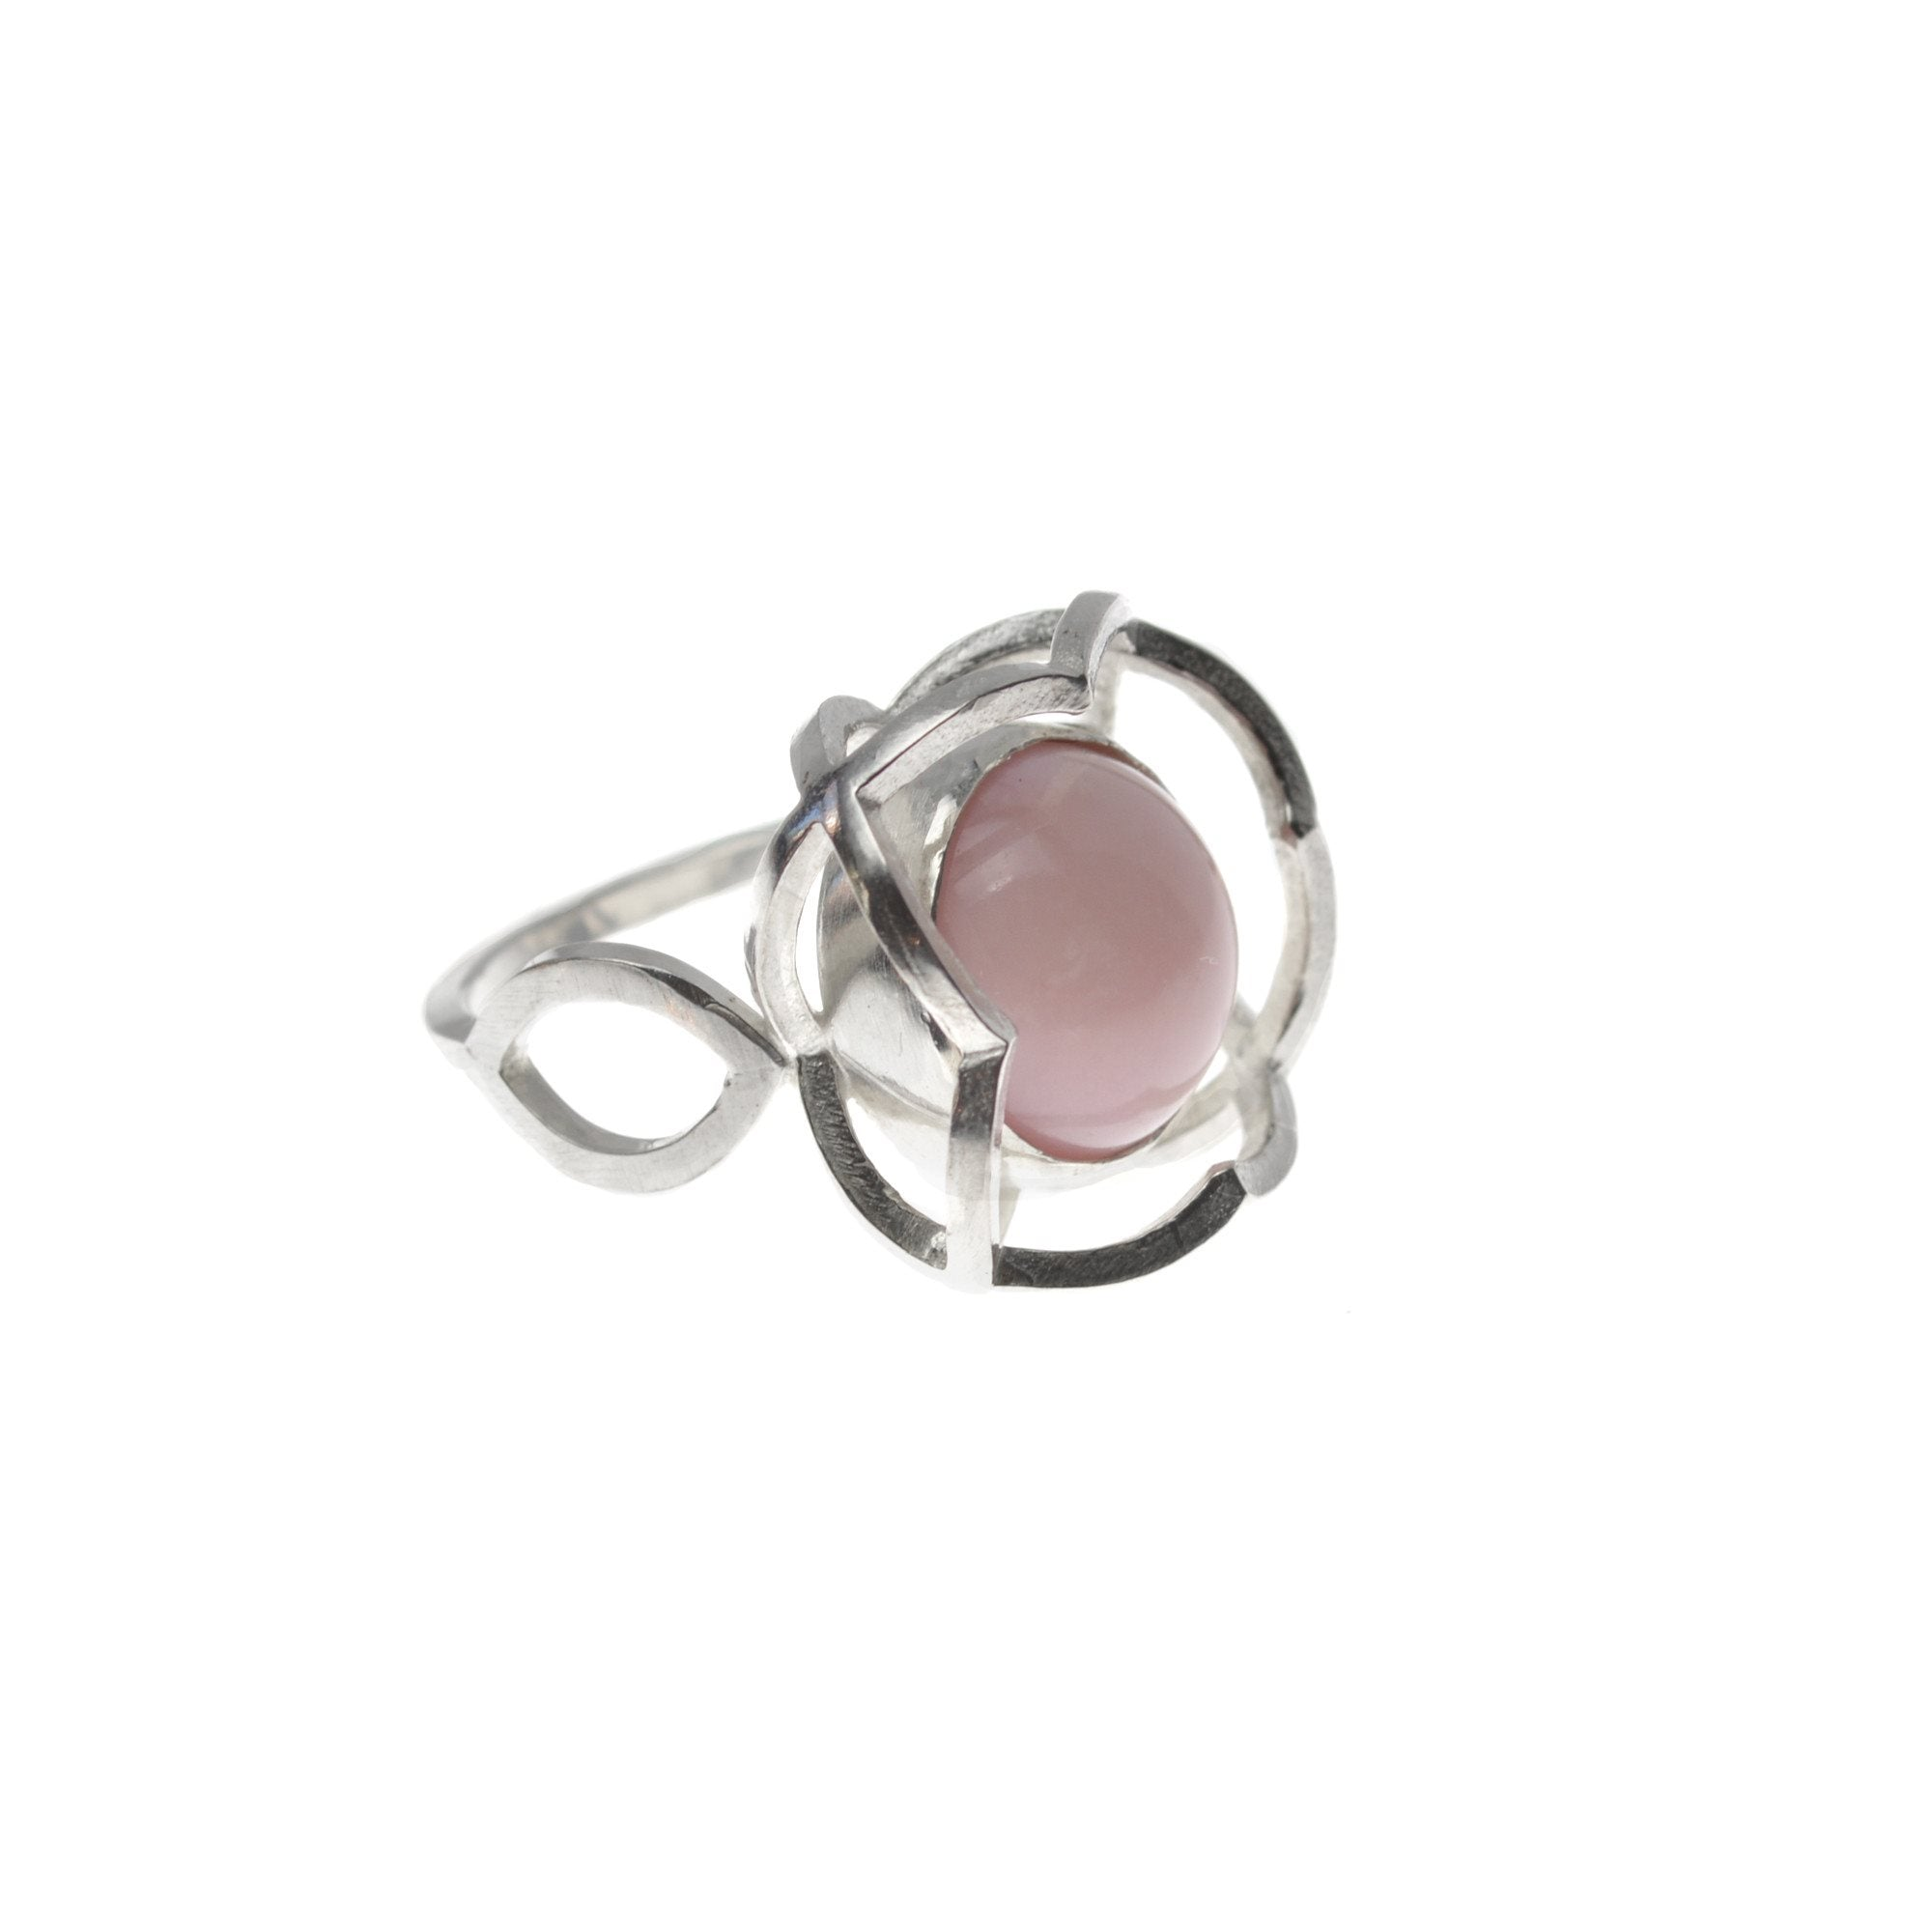 Quatrefoil Ring with Peruvian Pink Opal set in Sterling Silver